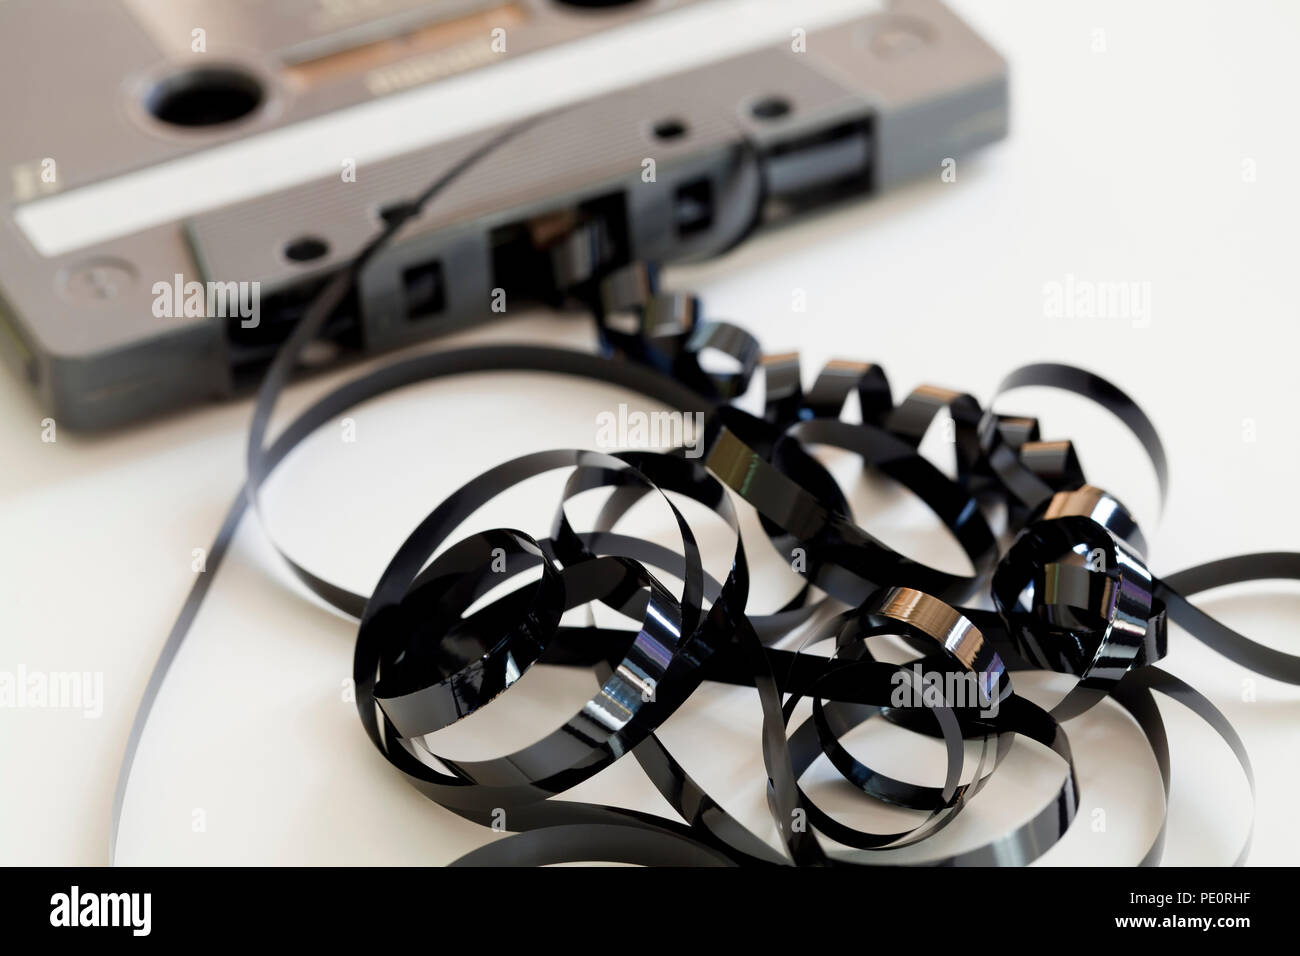 Compact audio cassette tape (aka compact cassette, music cassette) - USA Stock Photo